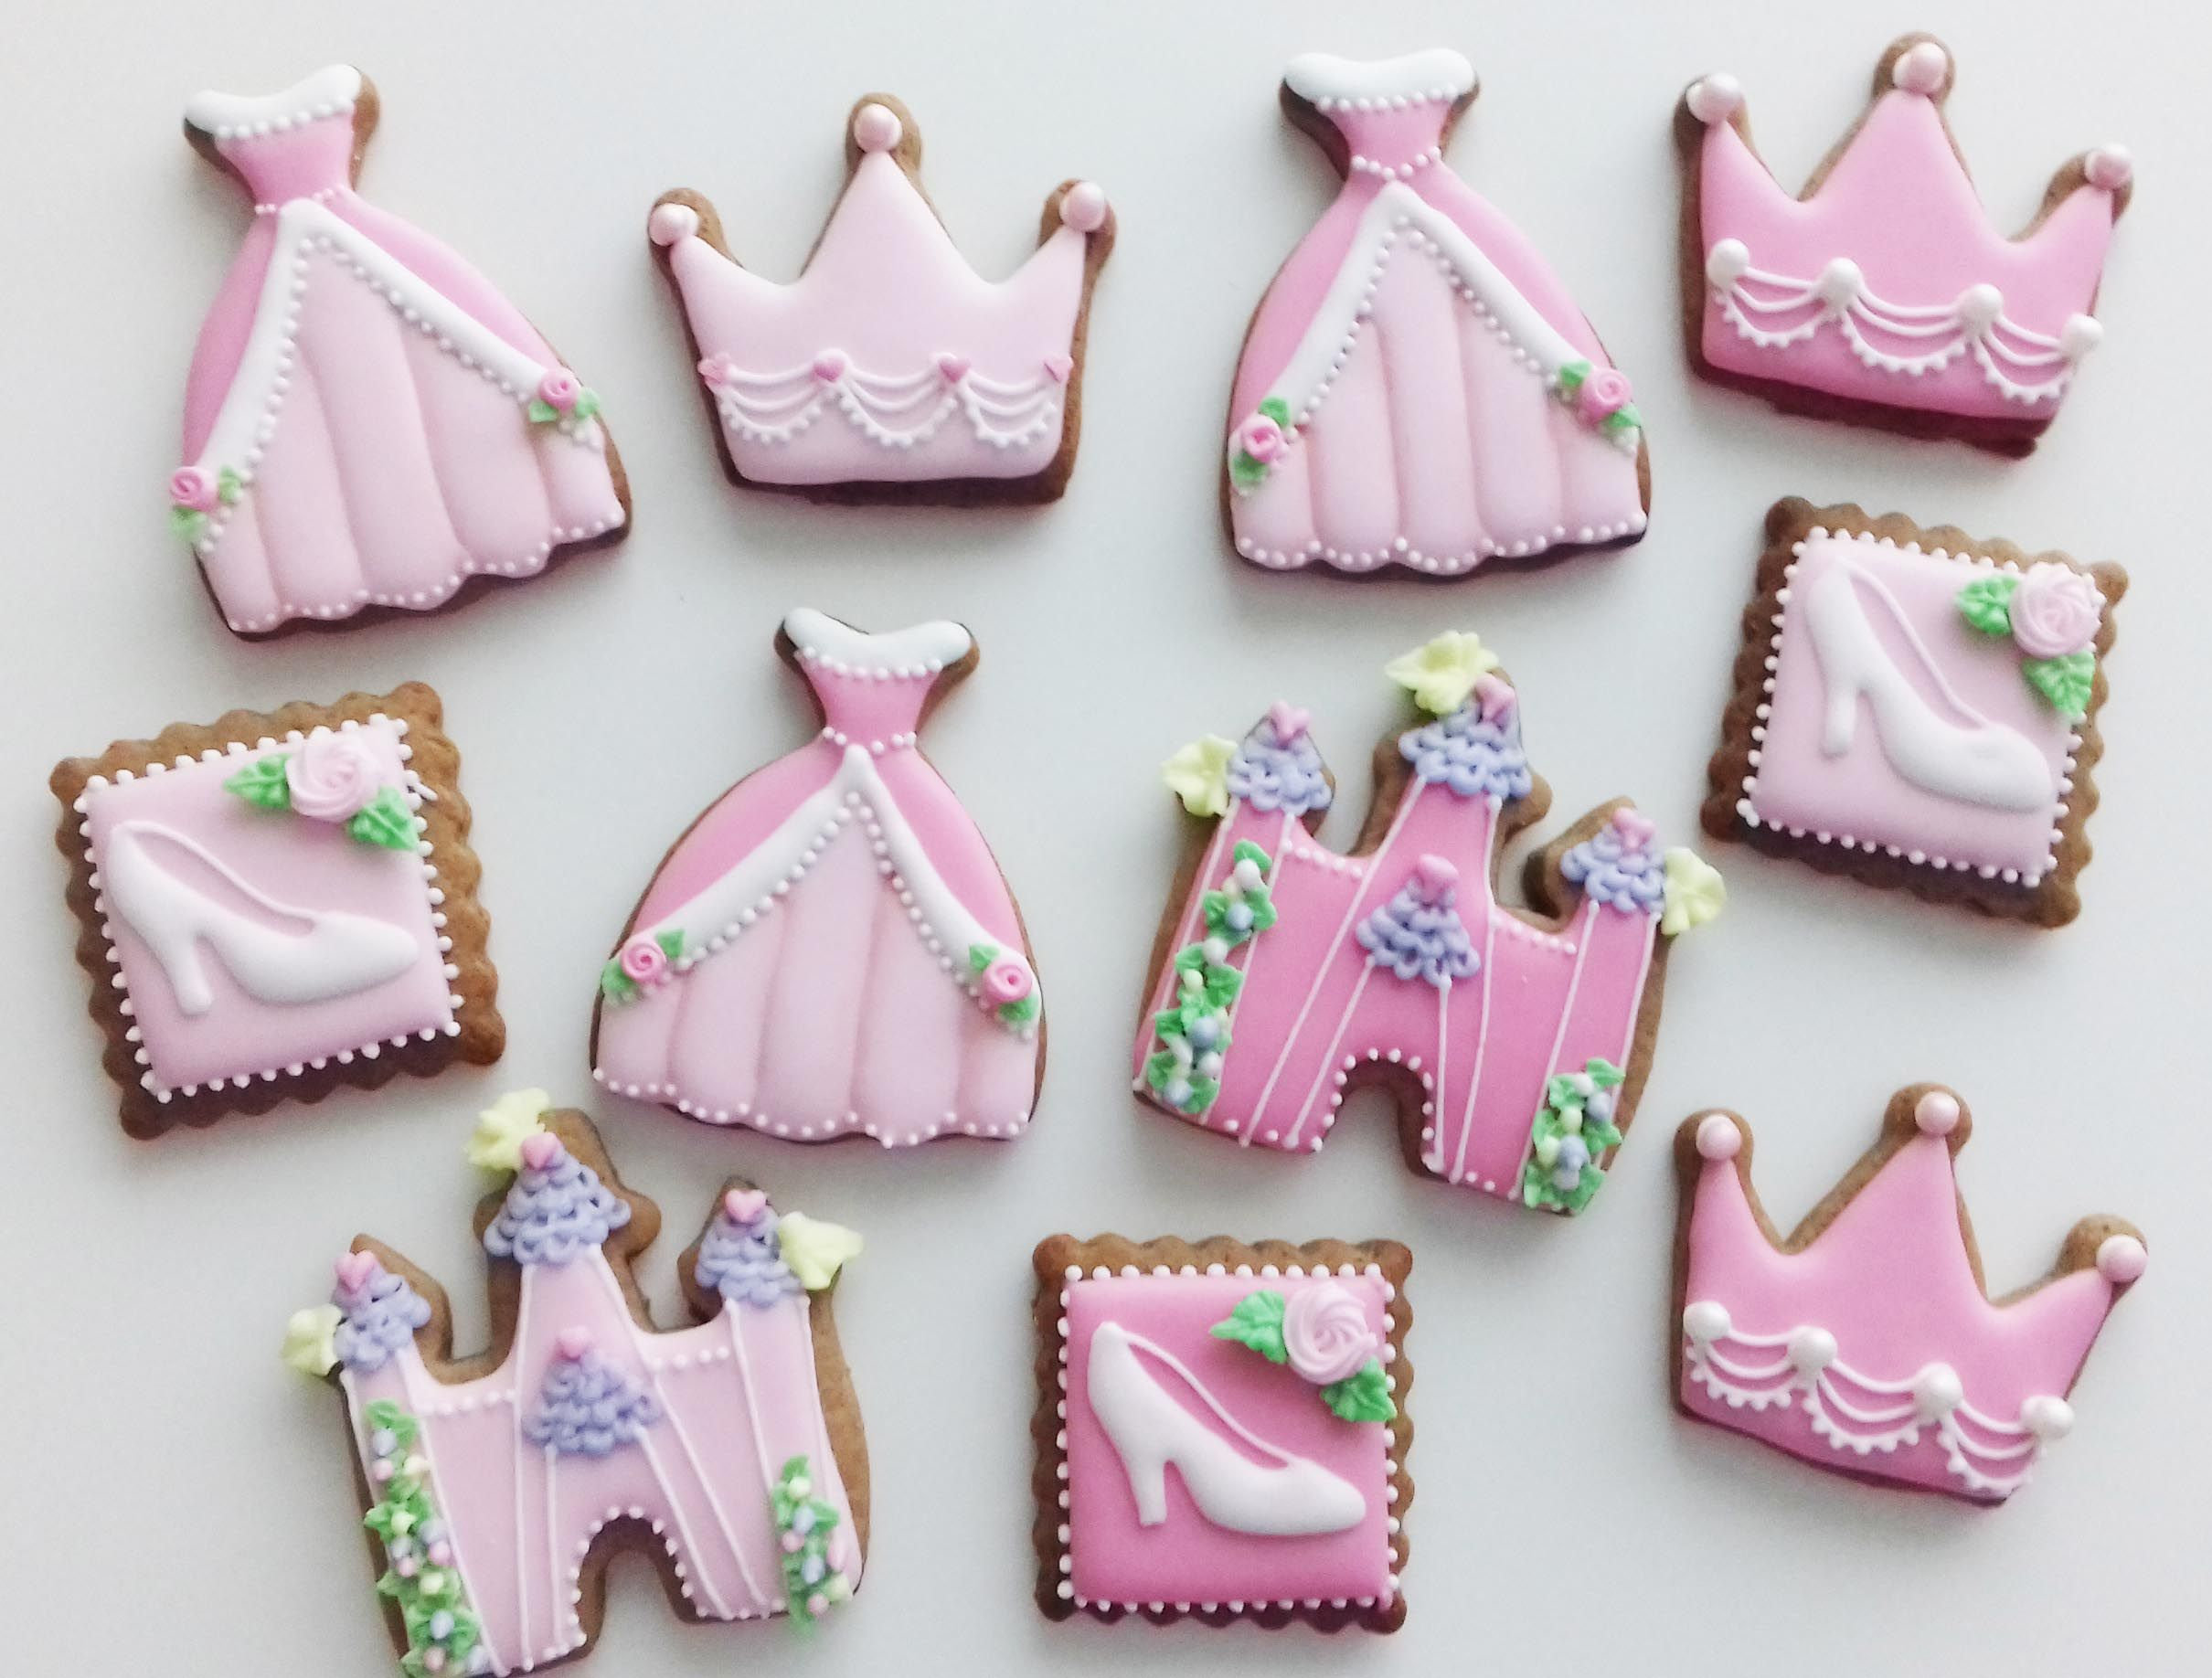 Princess Cookies By Lille Kage Hus